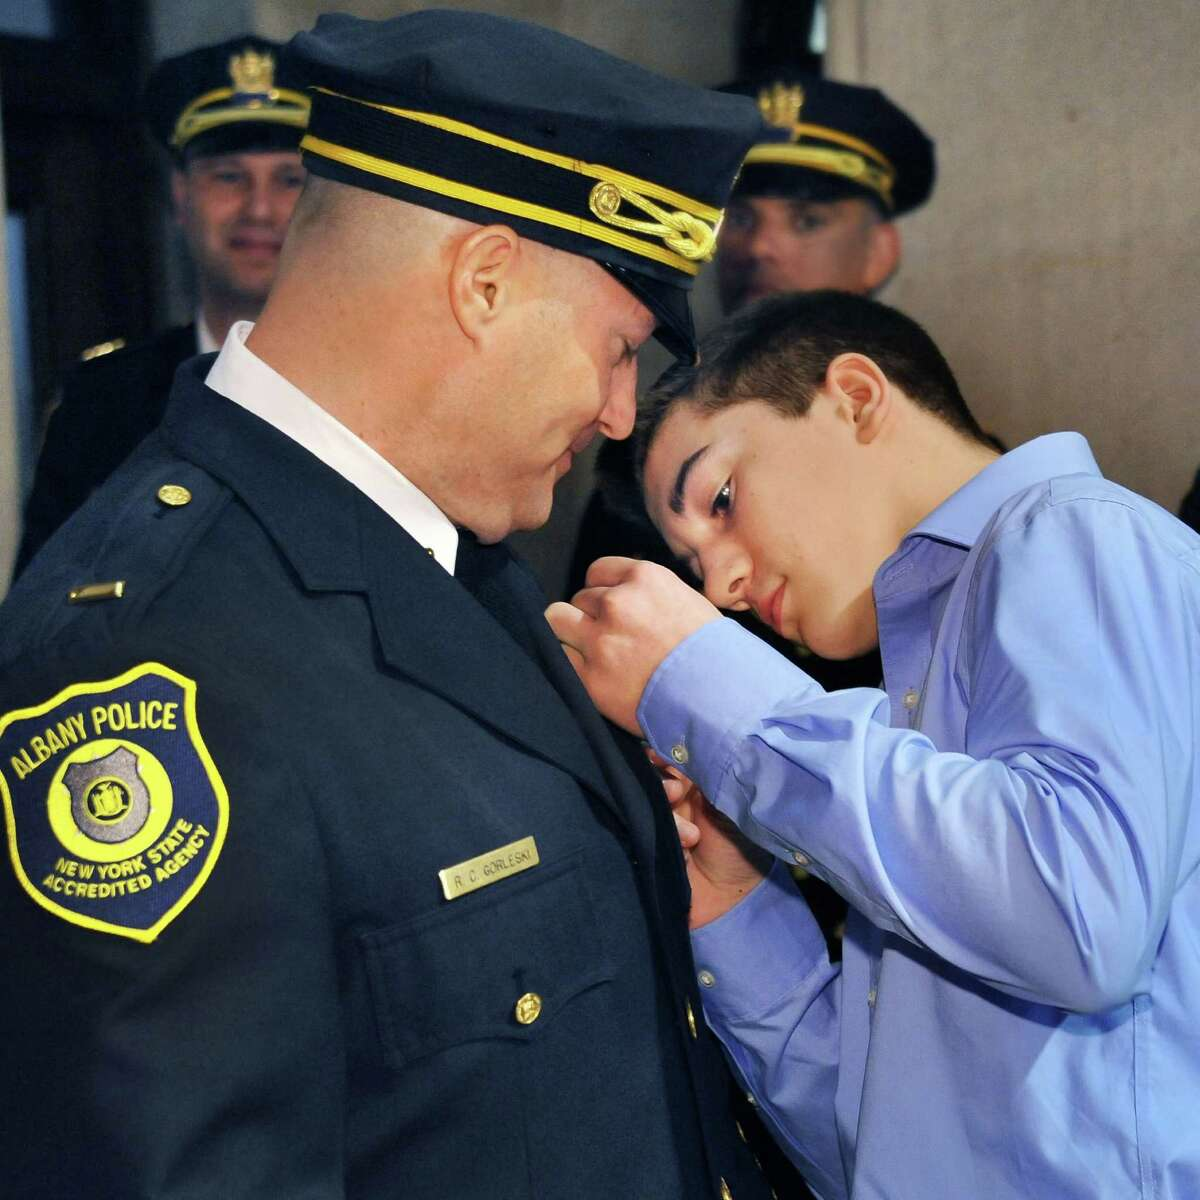 Newly promoted Albany Police Lieutenant Richard Gorleski has his badge pinned on by son Cole Gorleski, 15, during a ceremony in the City Hall Rotunda on Friday morning, March 11, 2016, in Albany, N.Y. (John Carl D'Annibale / Times Union)